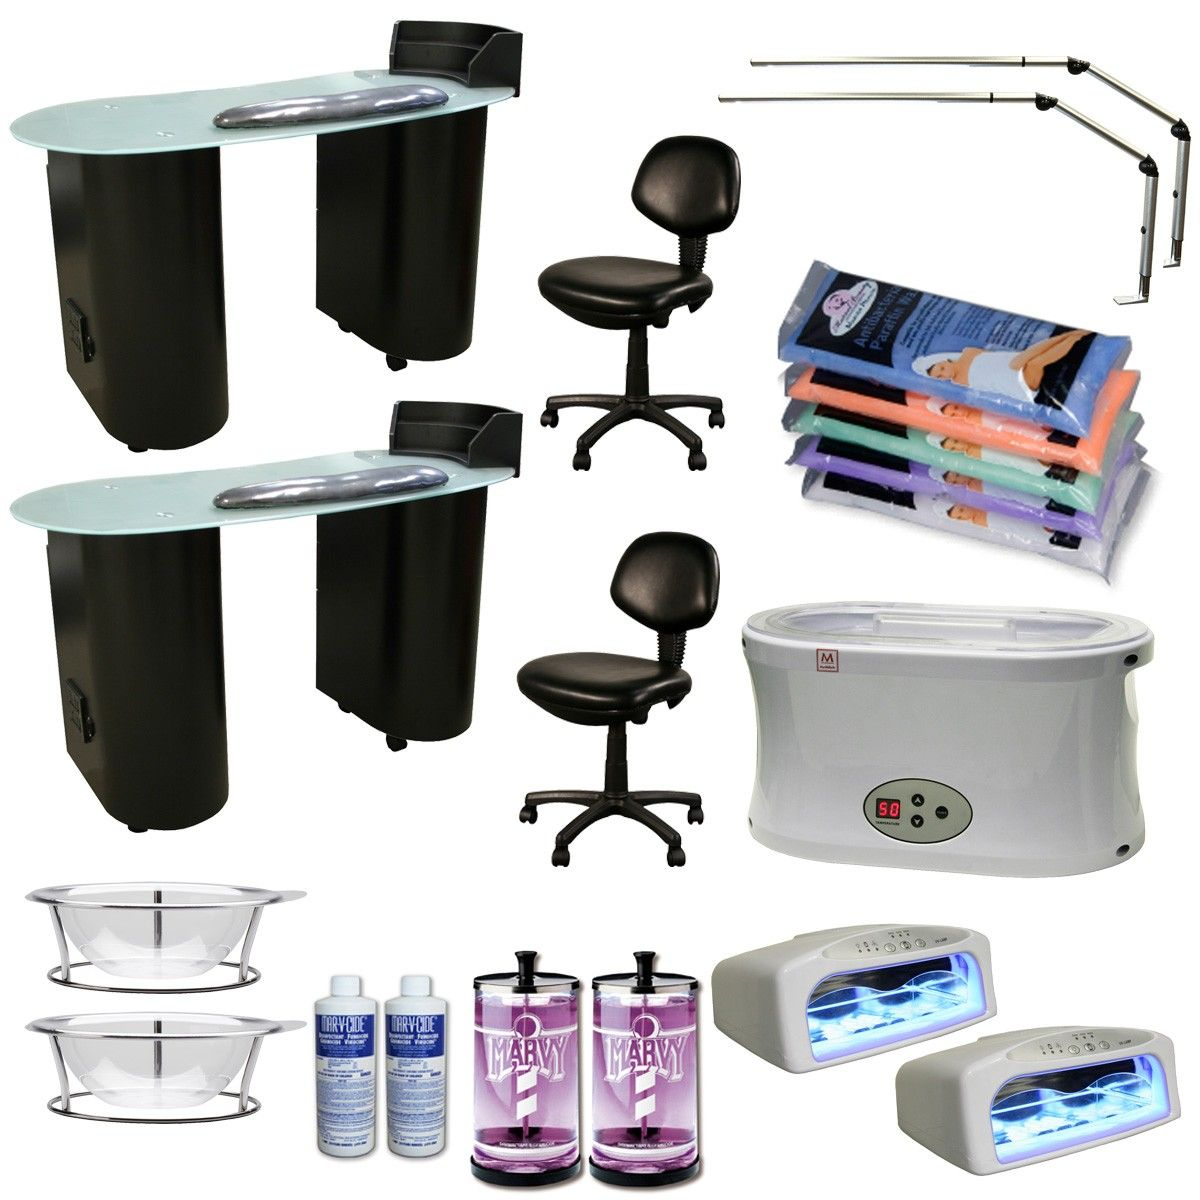 The+Lanier+2+Station+Manicure+Equipment+Package+includes